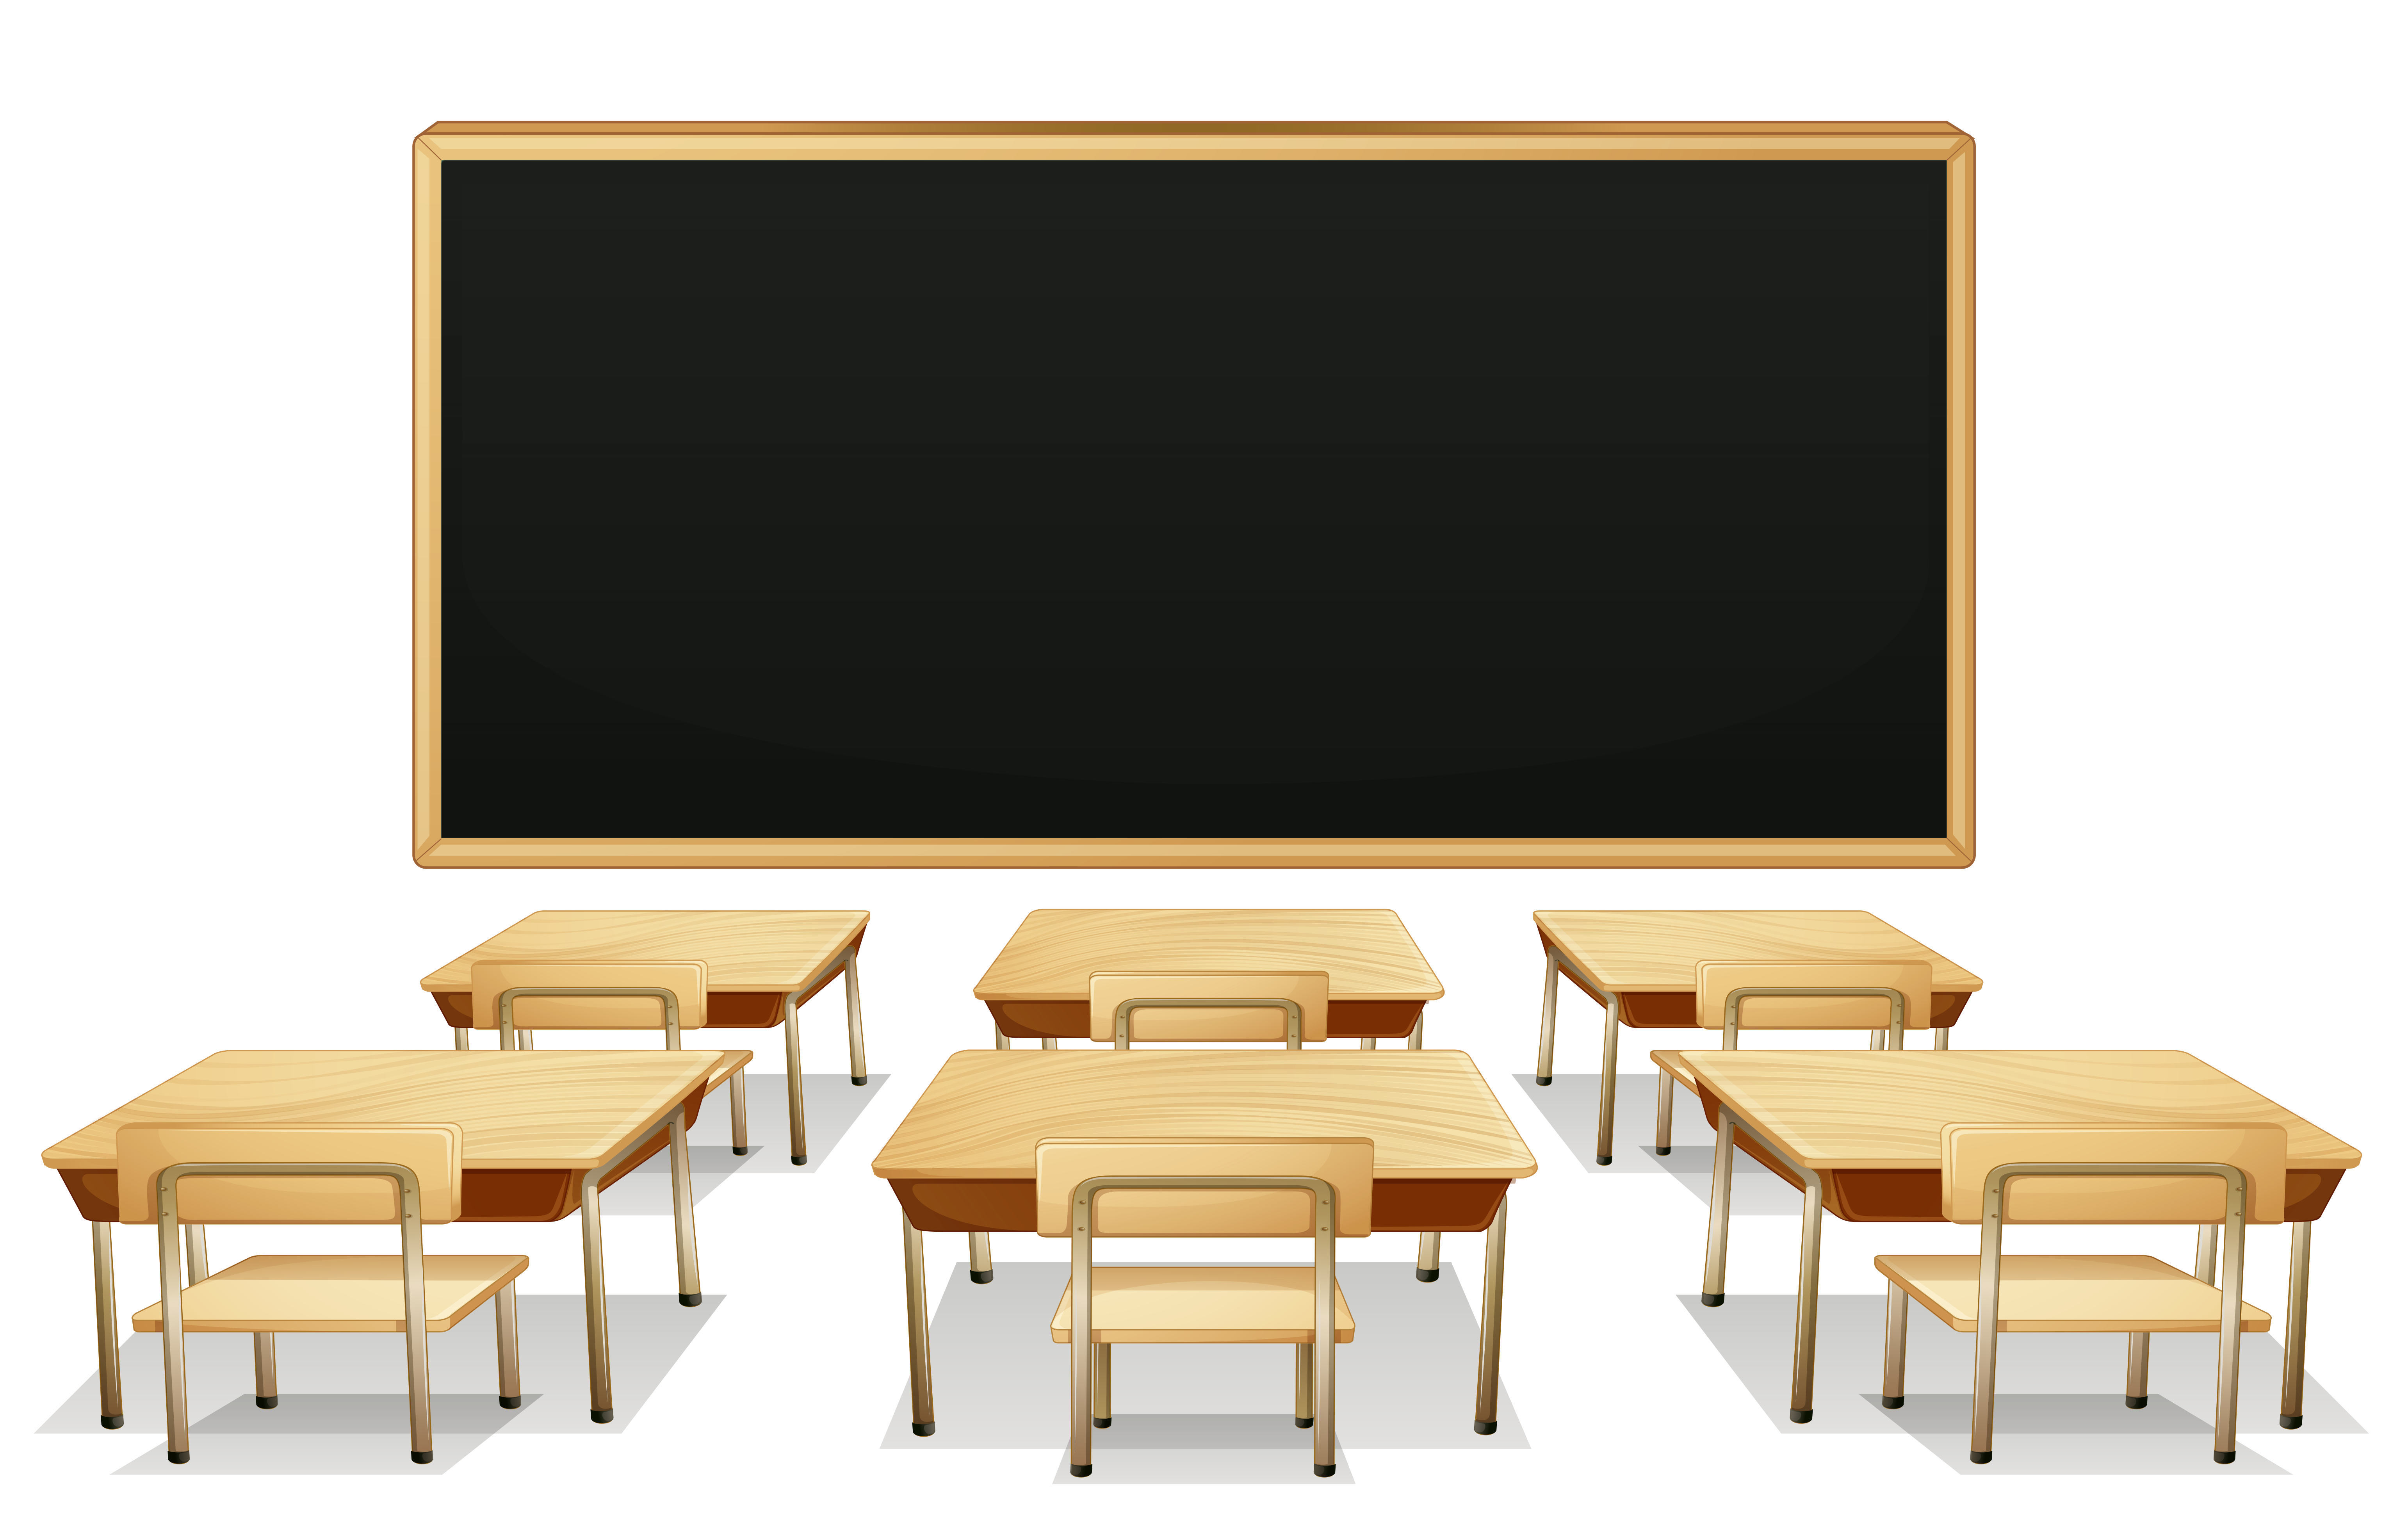 School with blackboard and. Desk clipart classroom